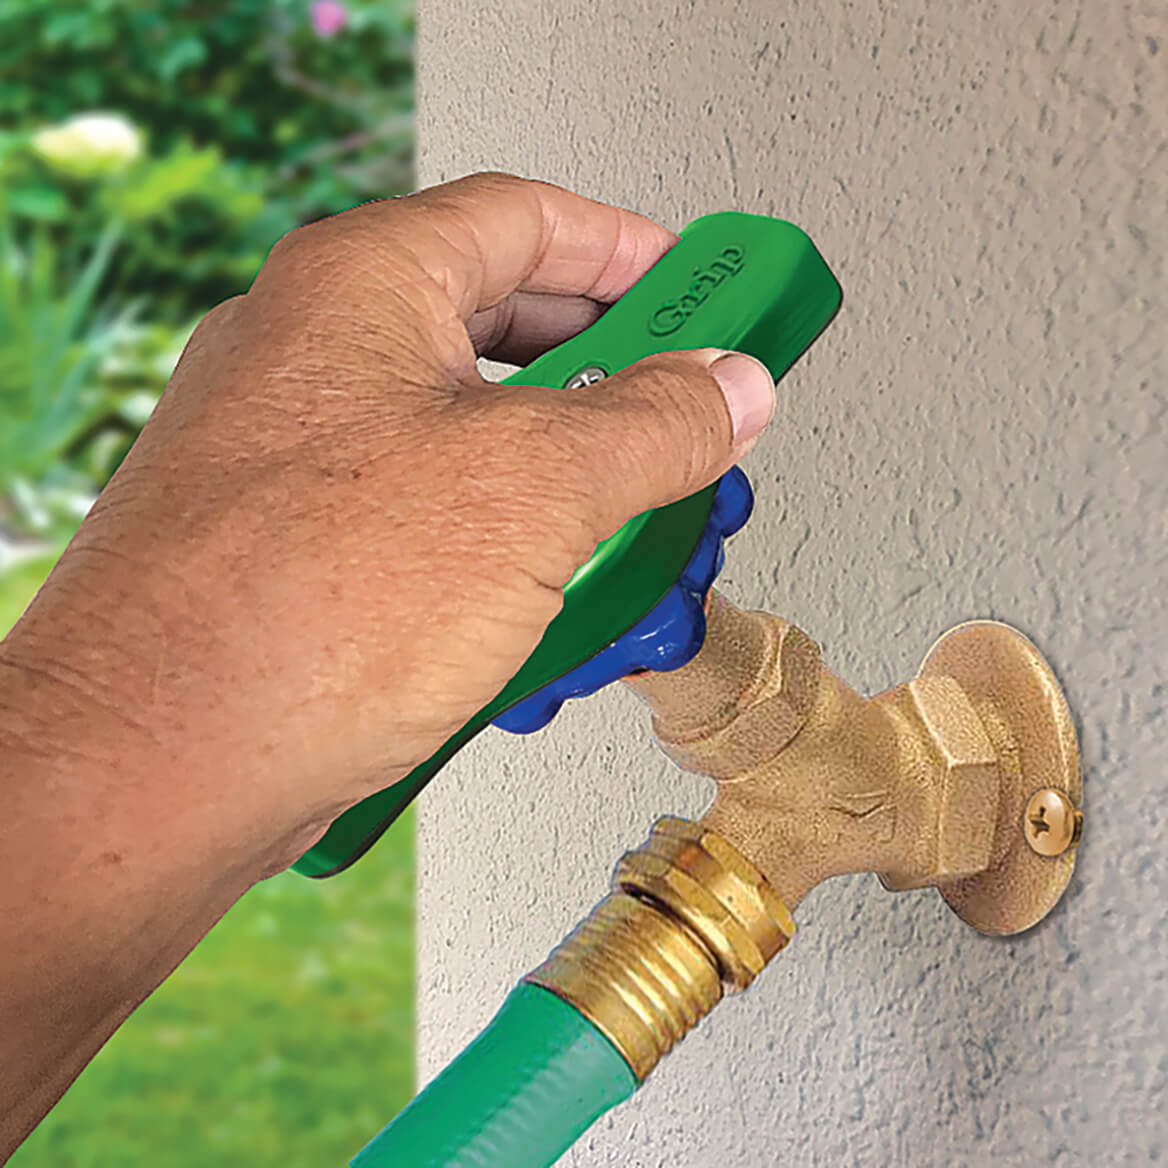 Easy Turn Outdoor Faucet Grip-369331